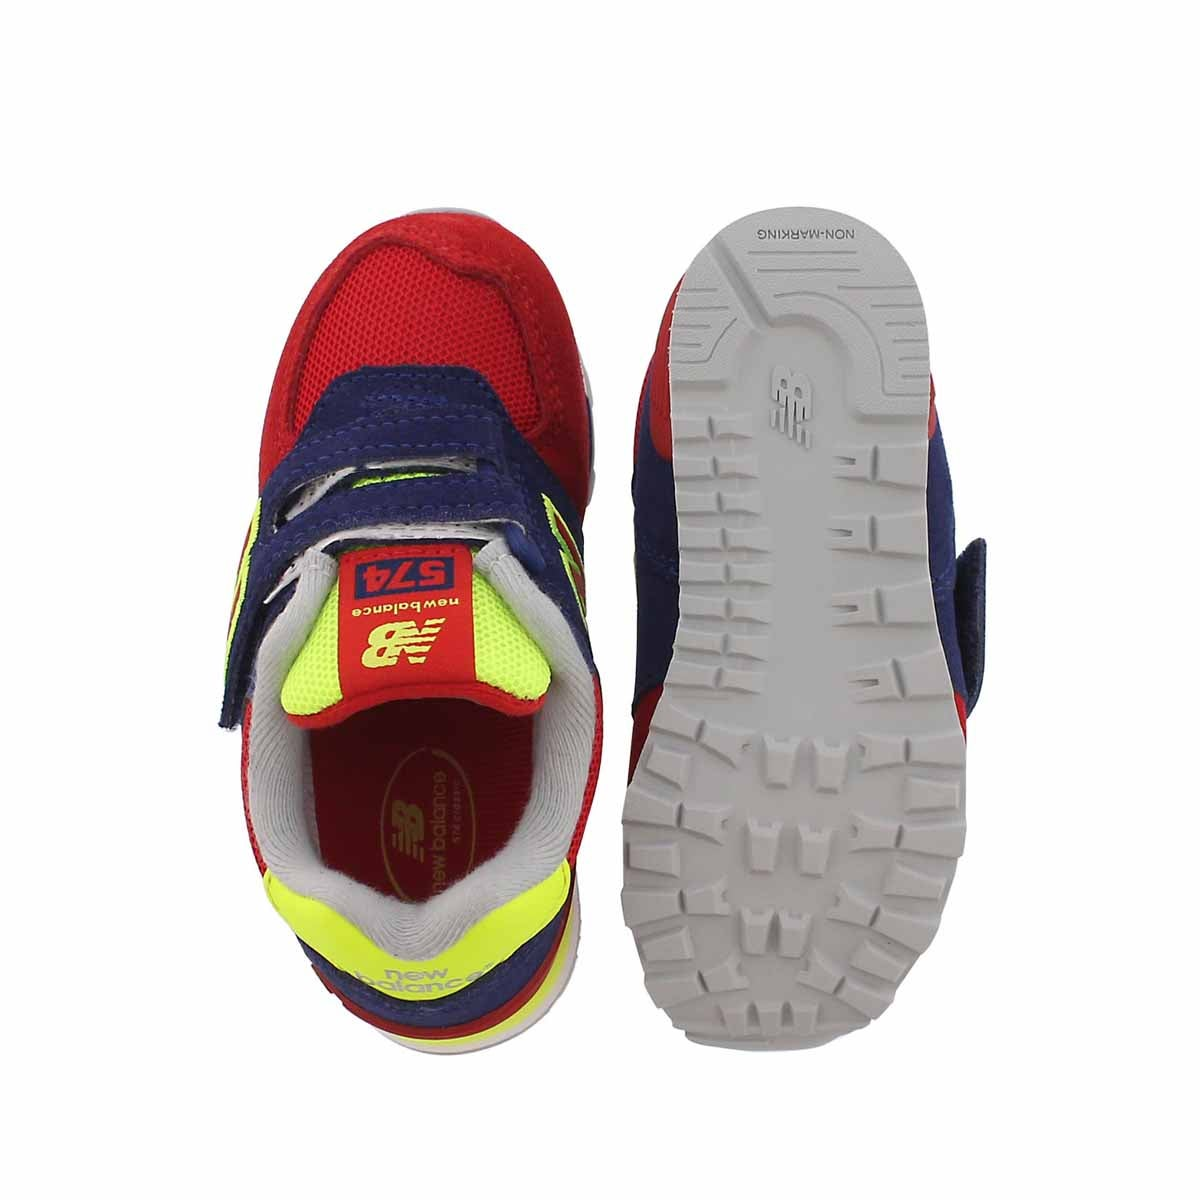 Infs 574 blue/red sneaker